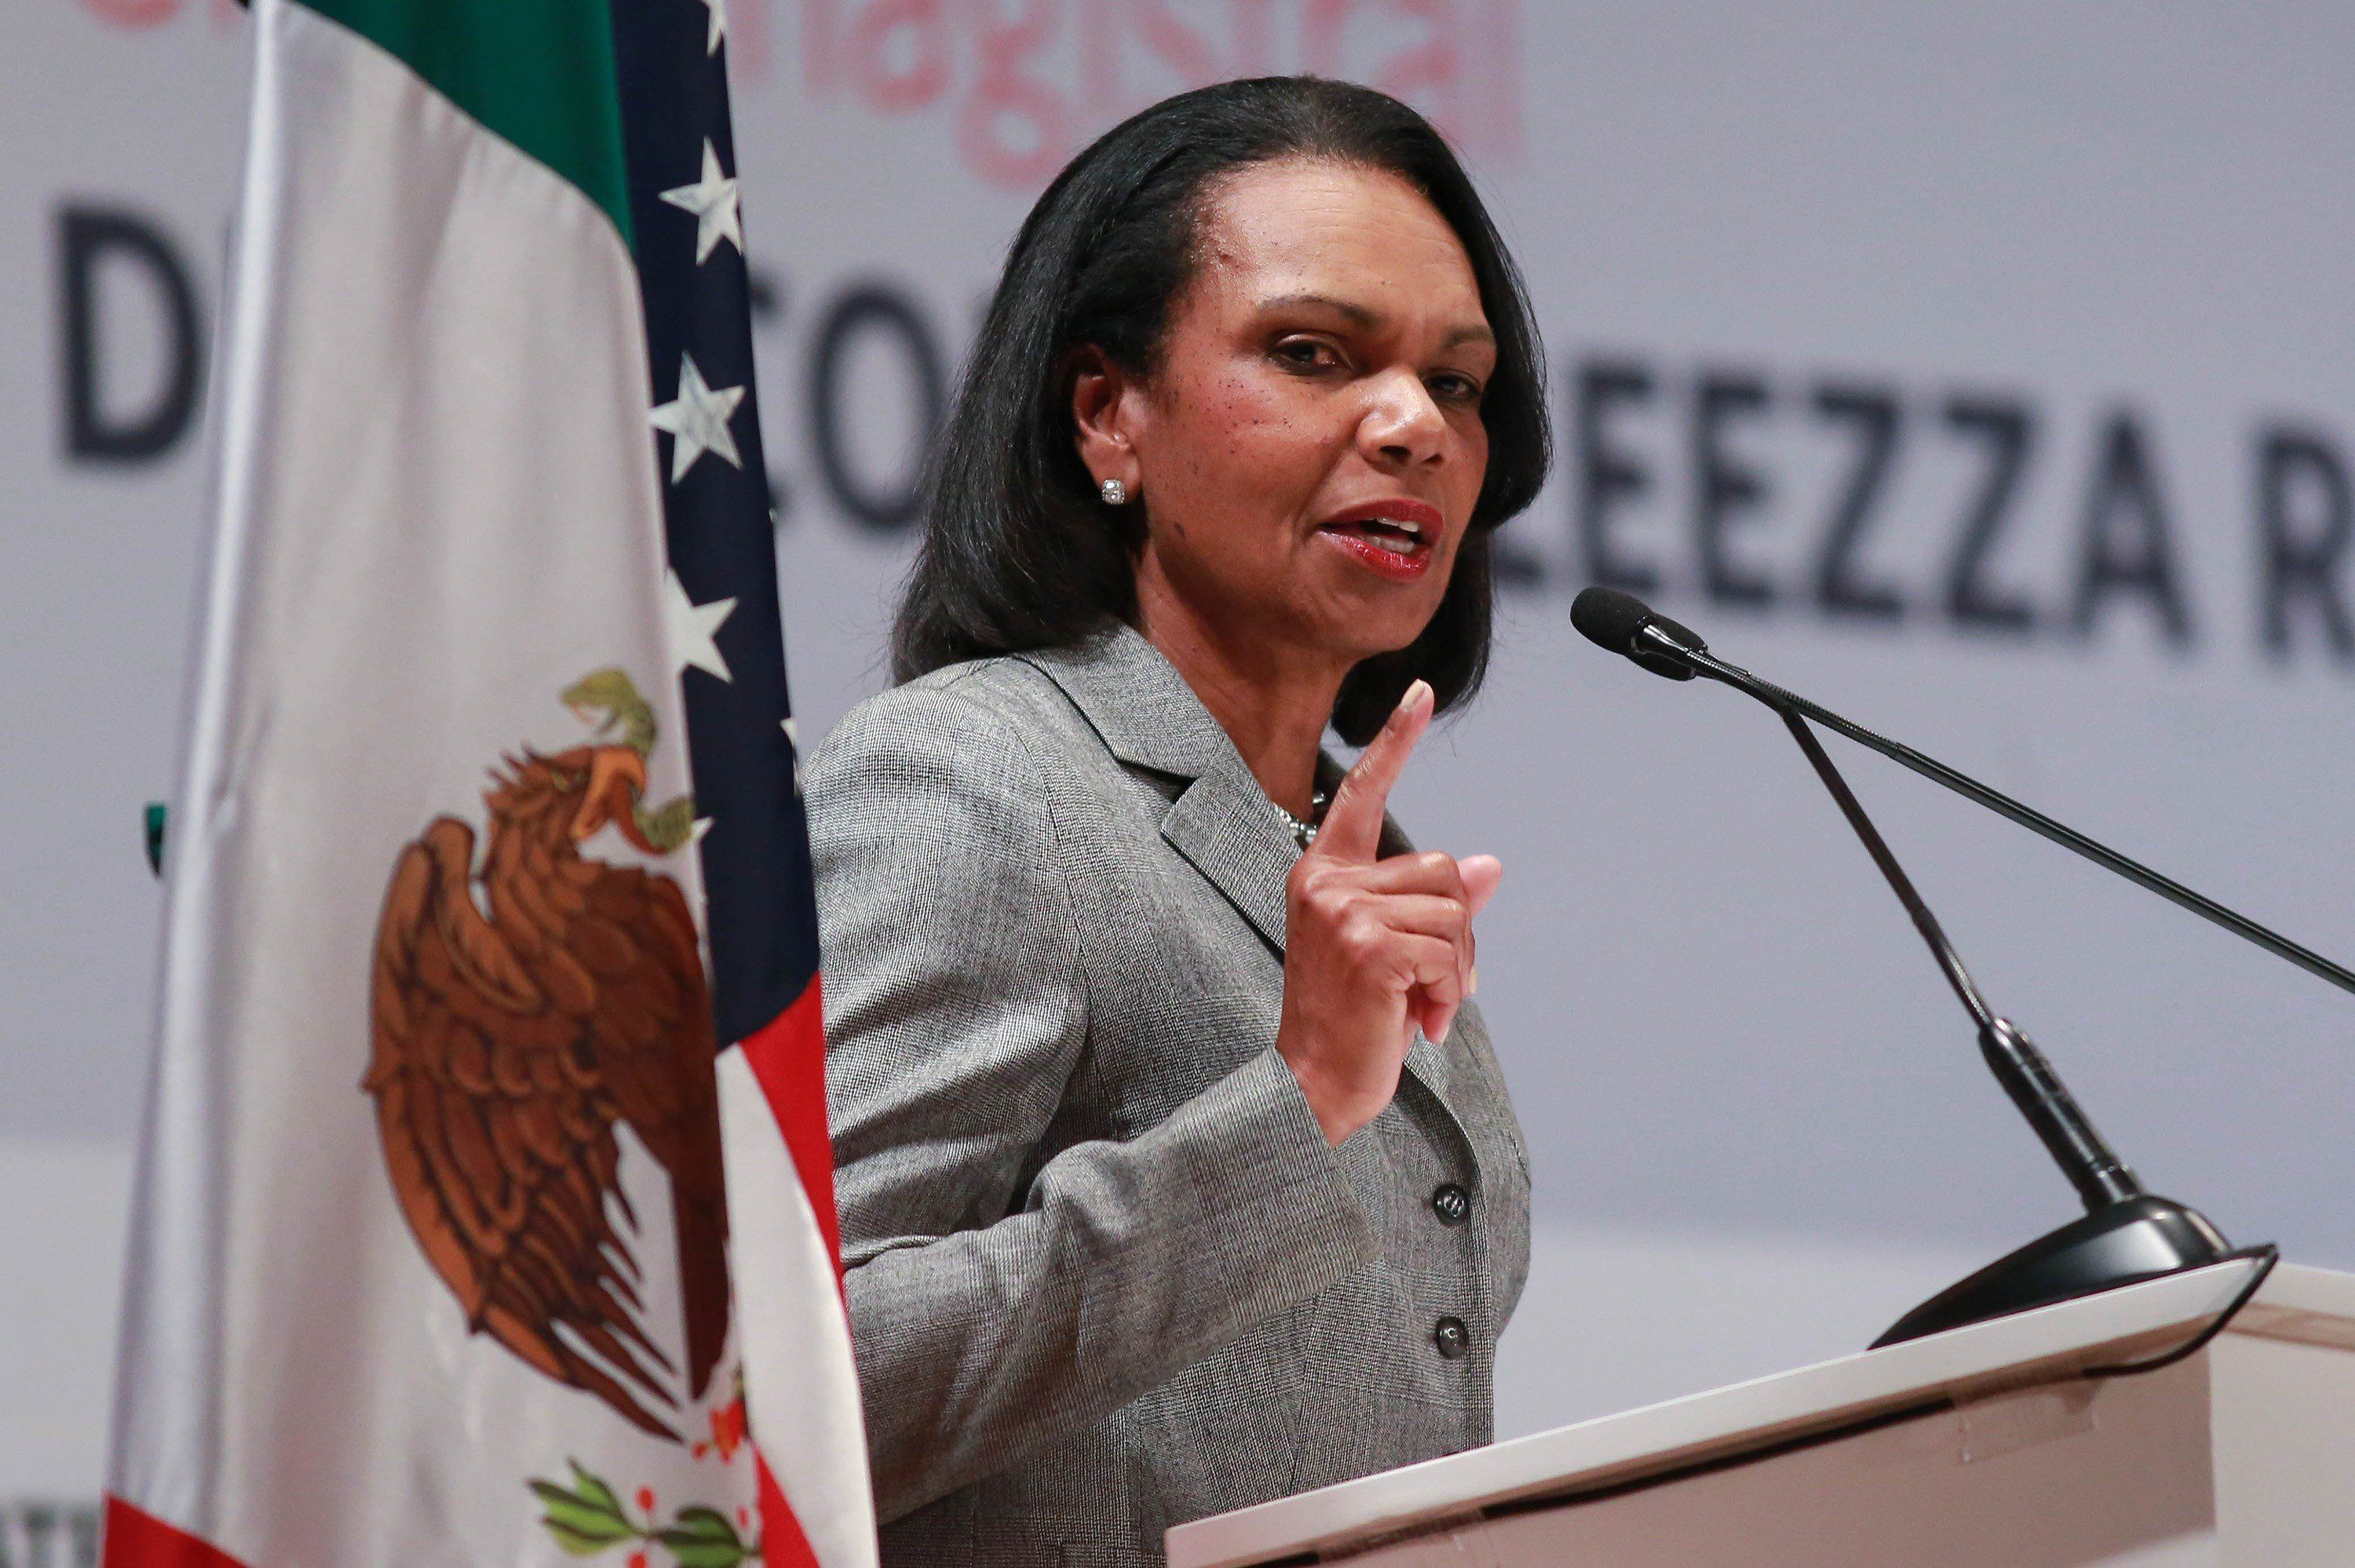 """Rice encouraged Alabama voters to """"reject bigotry, sexism, and intolerance"""" during Tuesday's special election for the U.S. Se"""